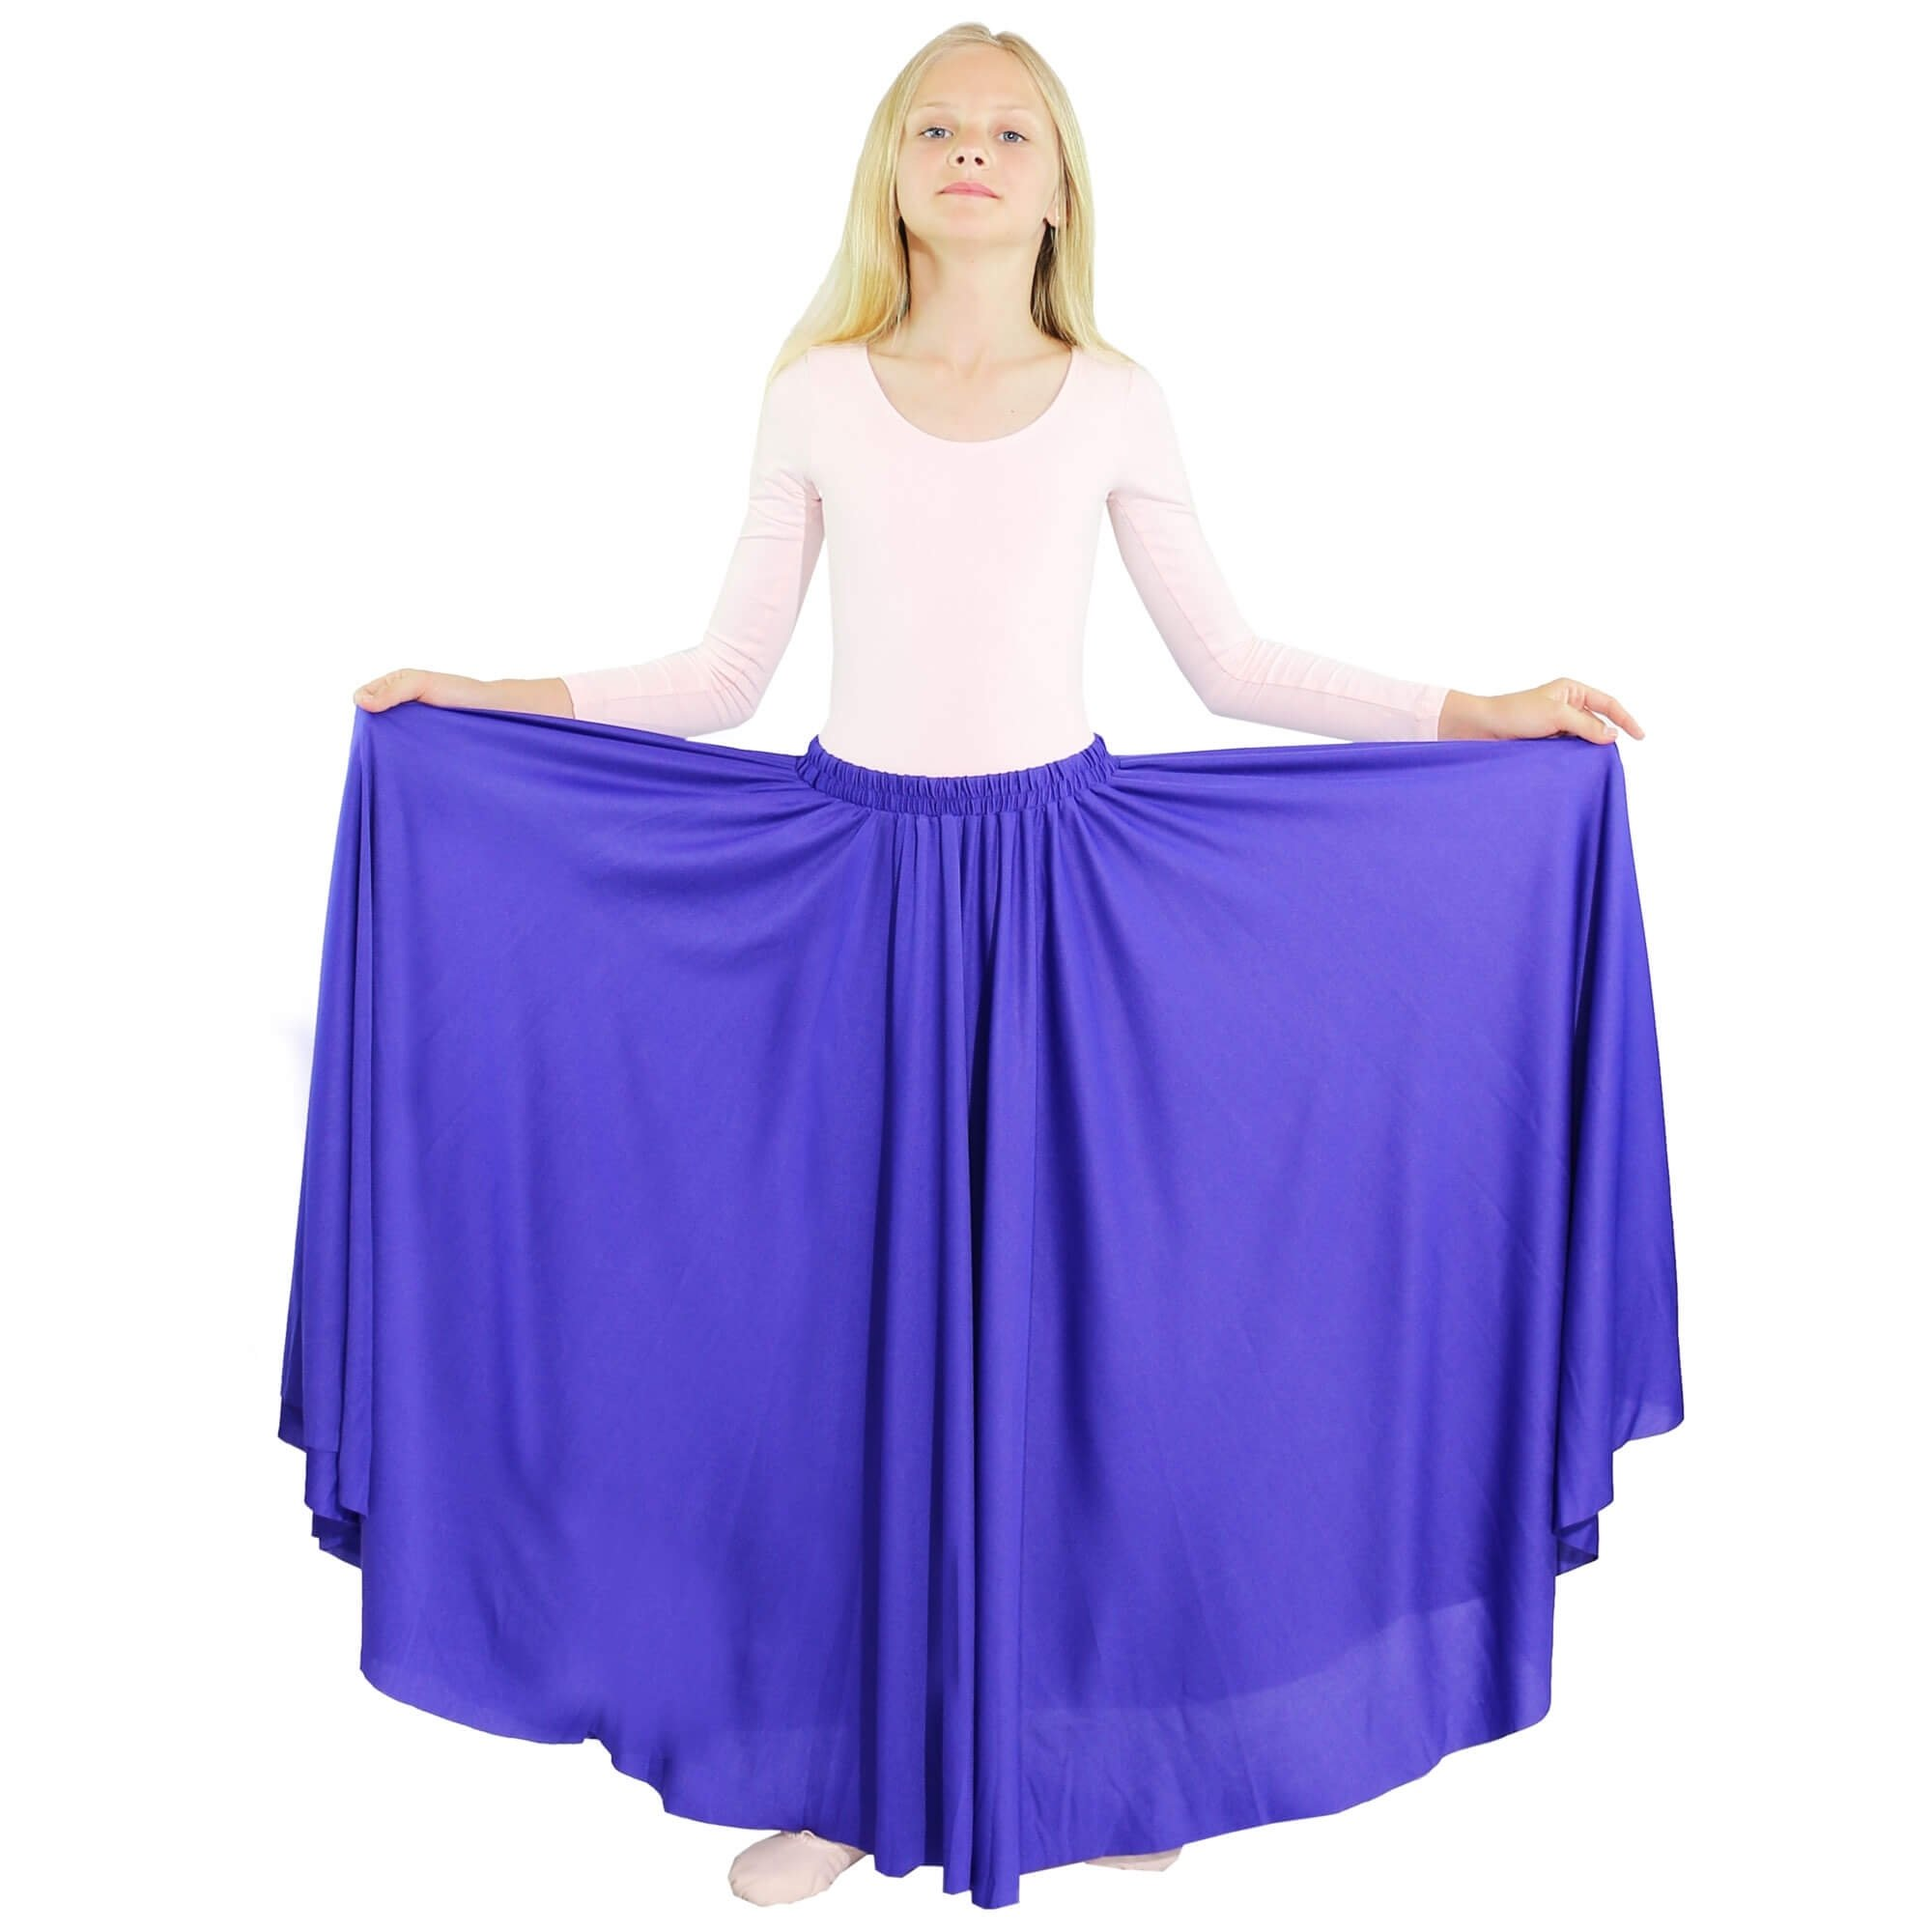 Danzcue Girls Long Full Circle Dance Skirt, Deep Purple, S-M by Danzcue